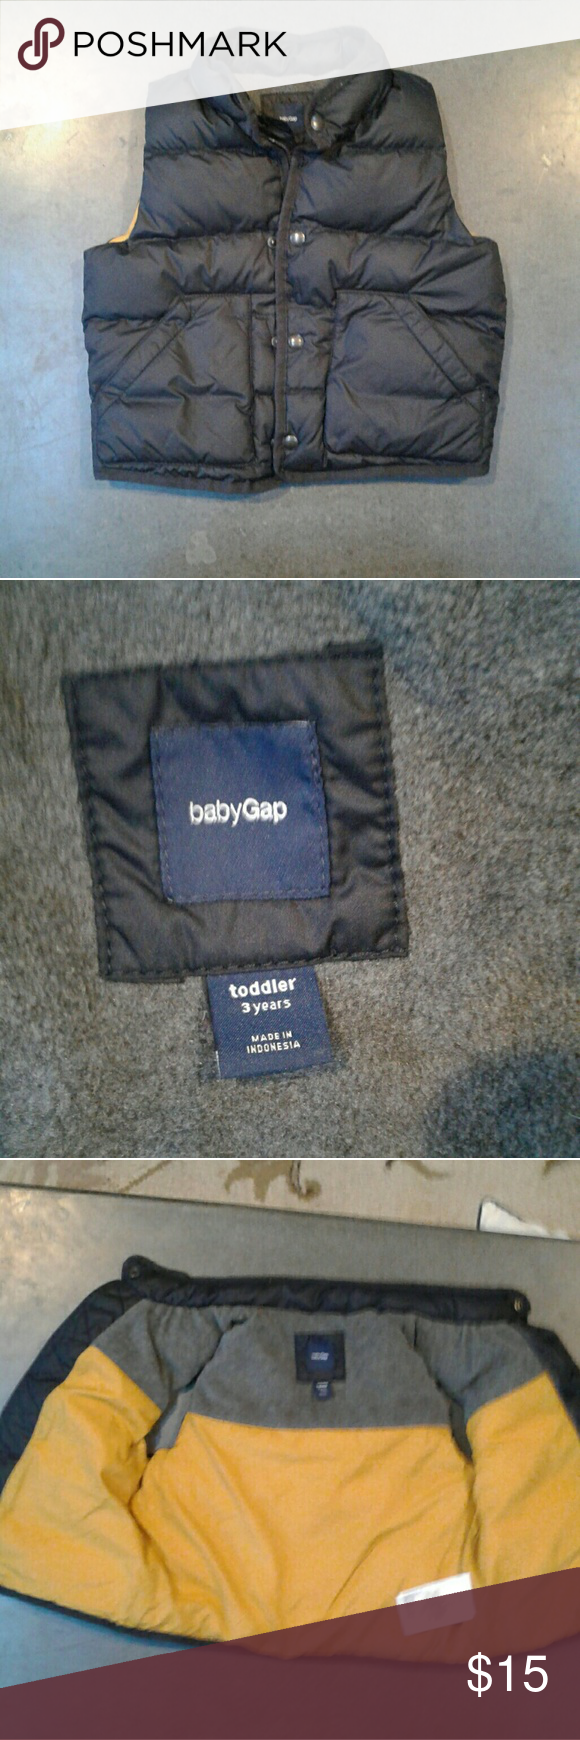 Gap puffer vest Boys 3T gap puffer vest. Used very rarely and now he refuses to wear it lol Navy blue outside. Yellow and half grey fleece inside. No wear of flaws of any kind GAP Jackets & Coats Vests